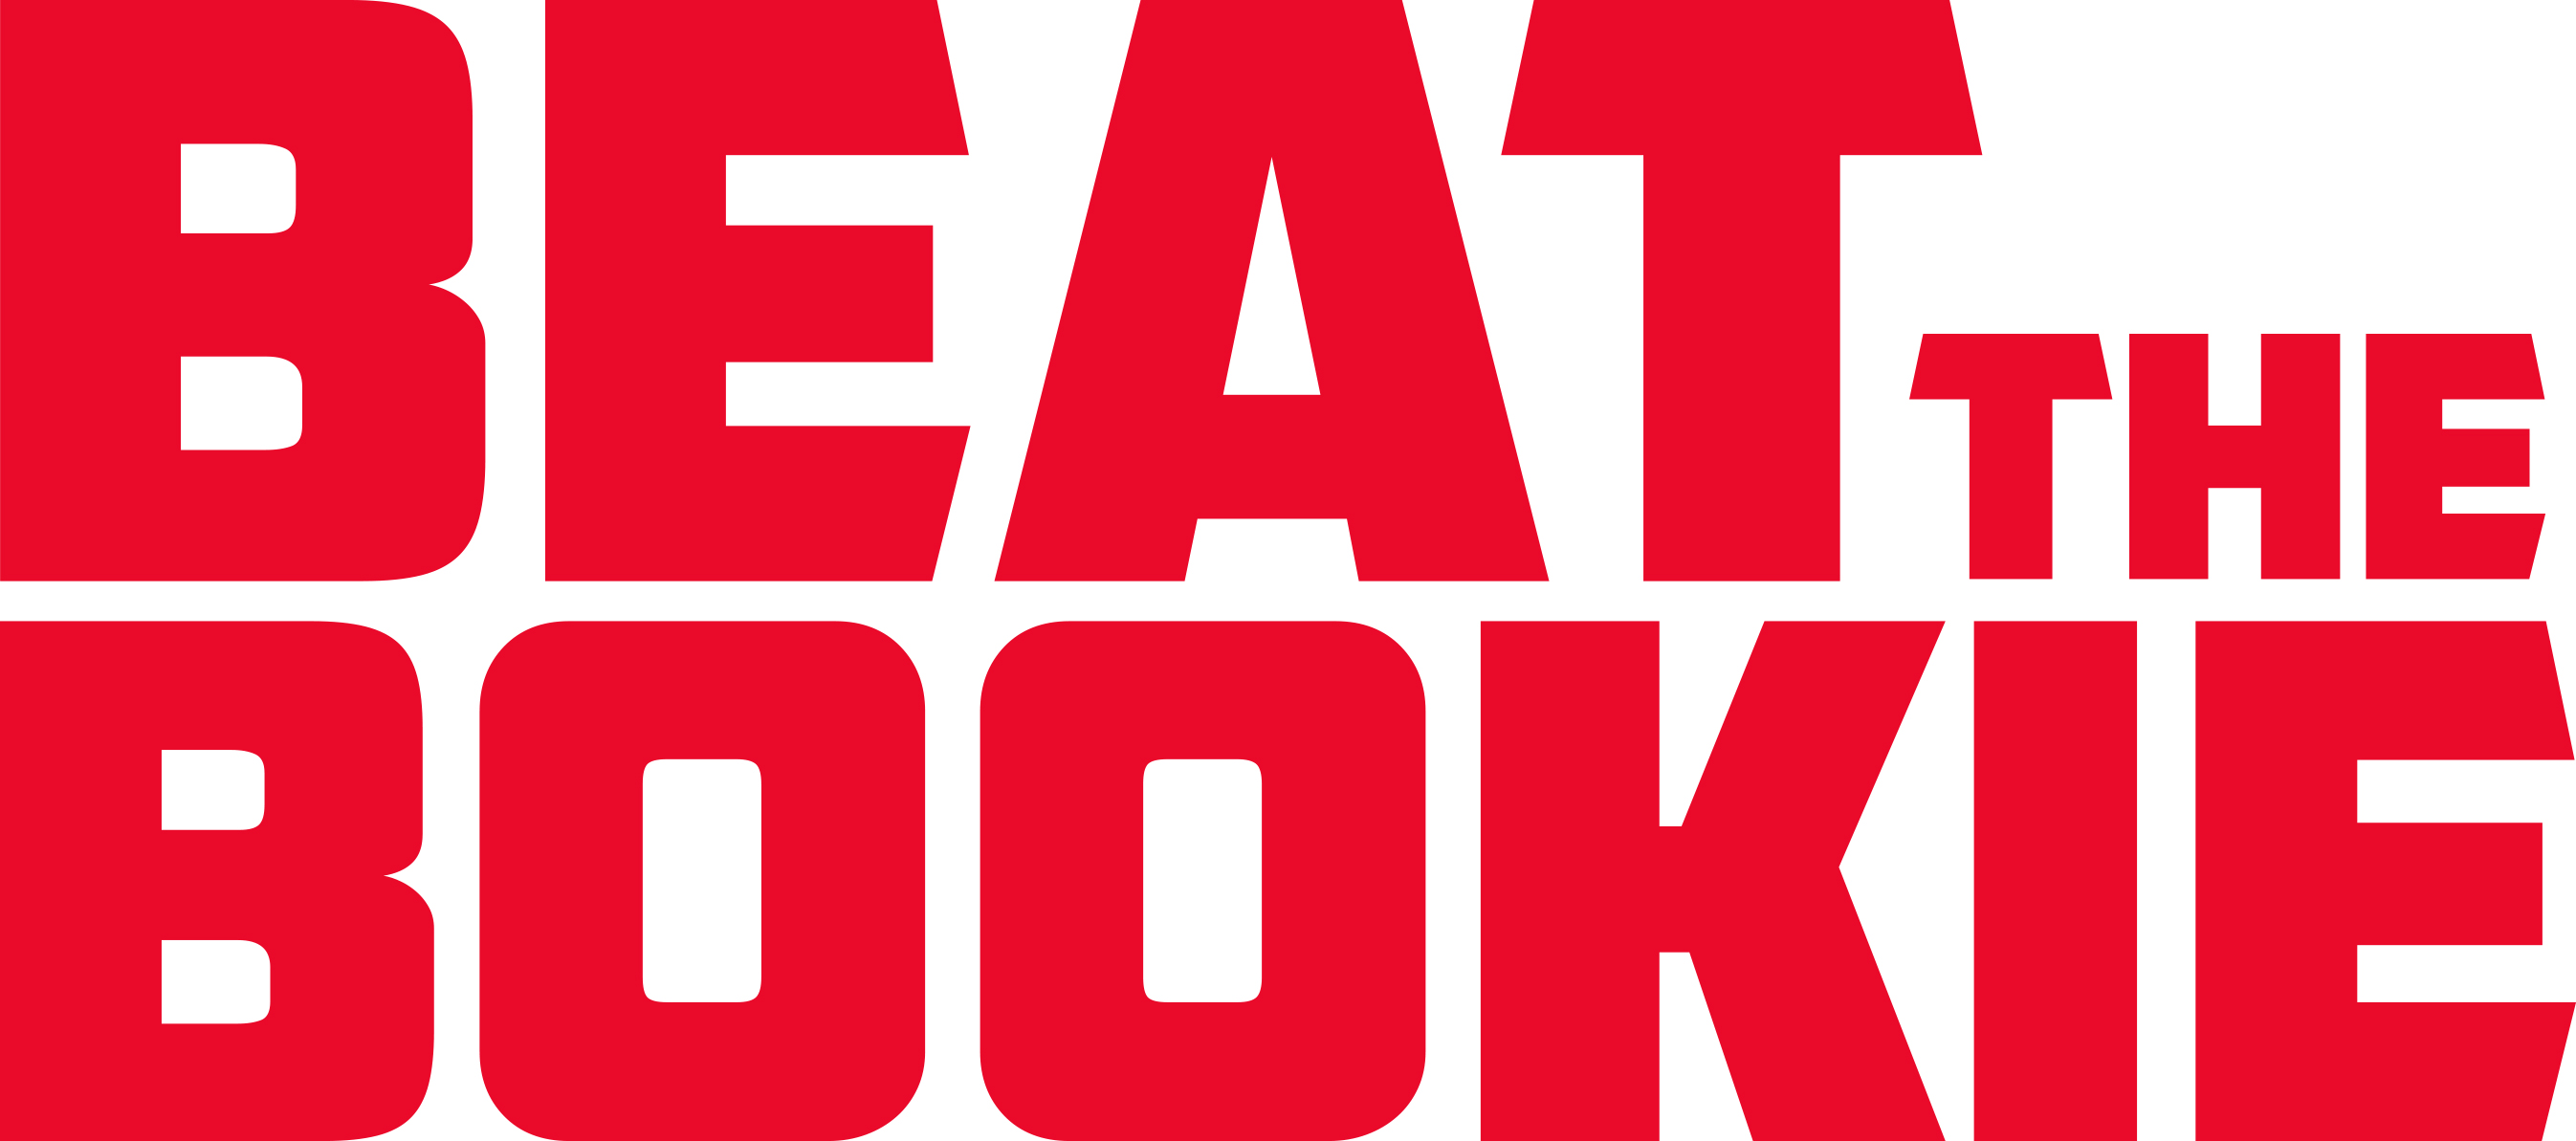 Beat the Bookie: Coming back this football season!